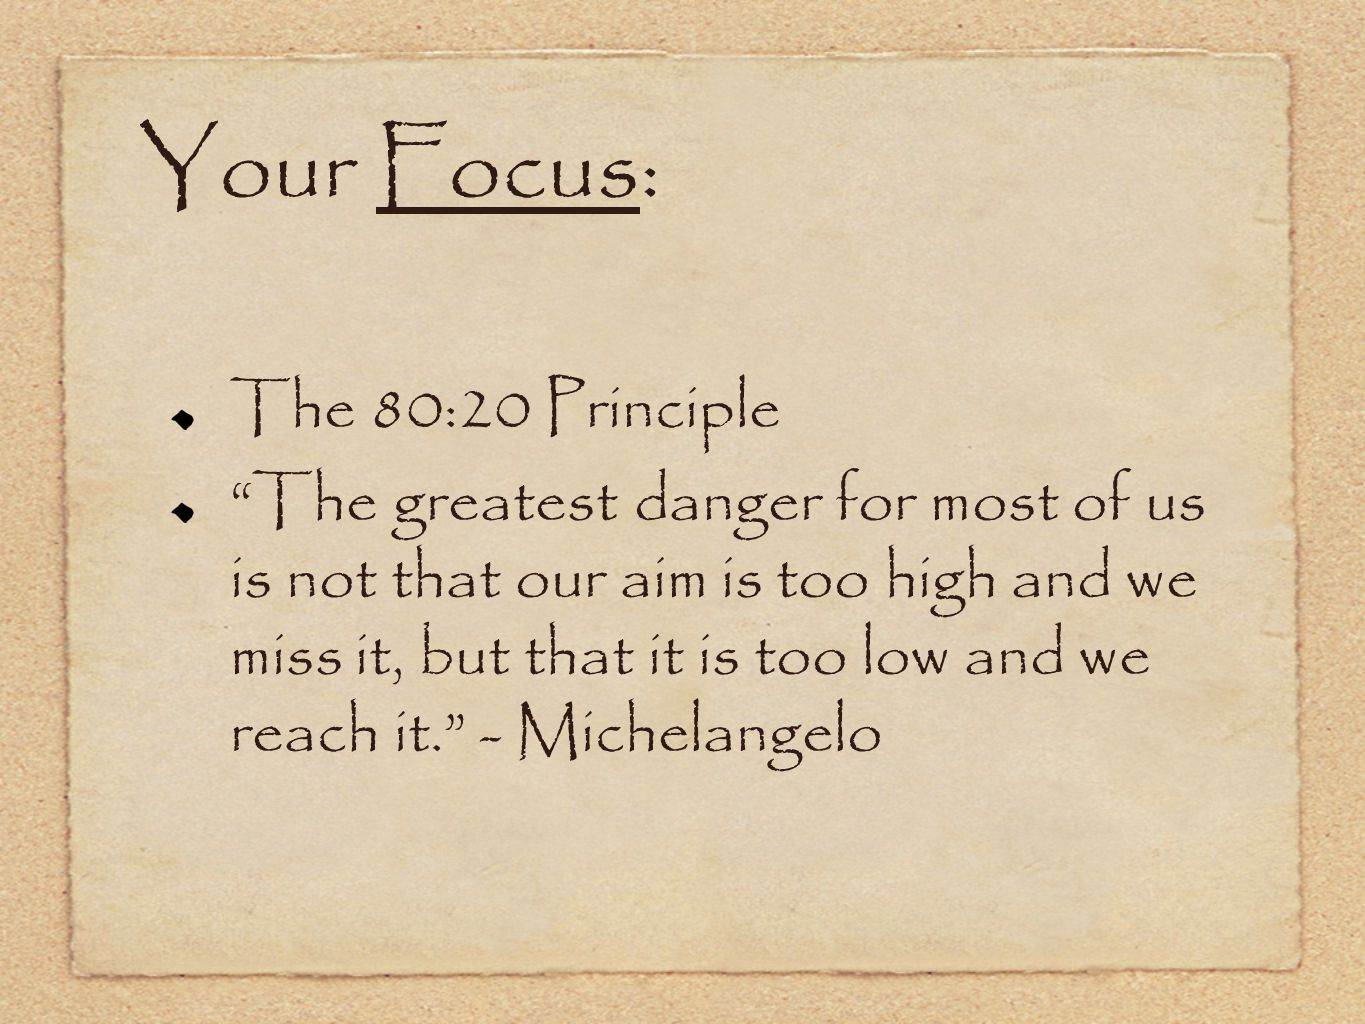 Your Focus: The 80:20 Principle The greatest danger for most of us is not that our aim is too high and we miss it, but that it is too low and we reach it. - Michelangelo